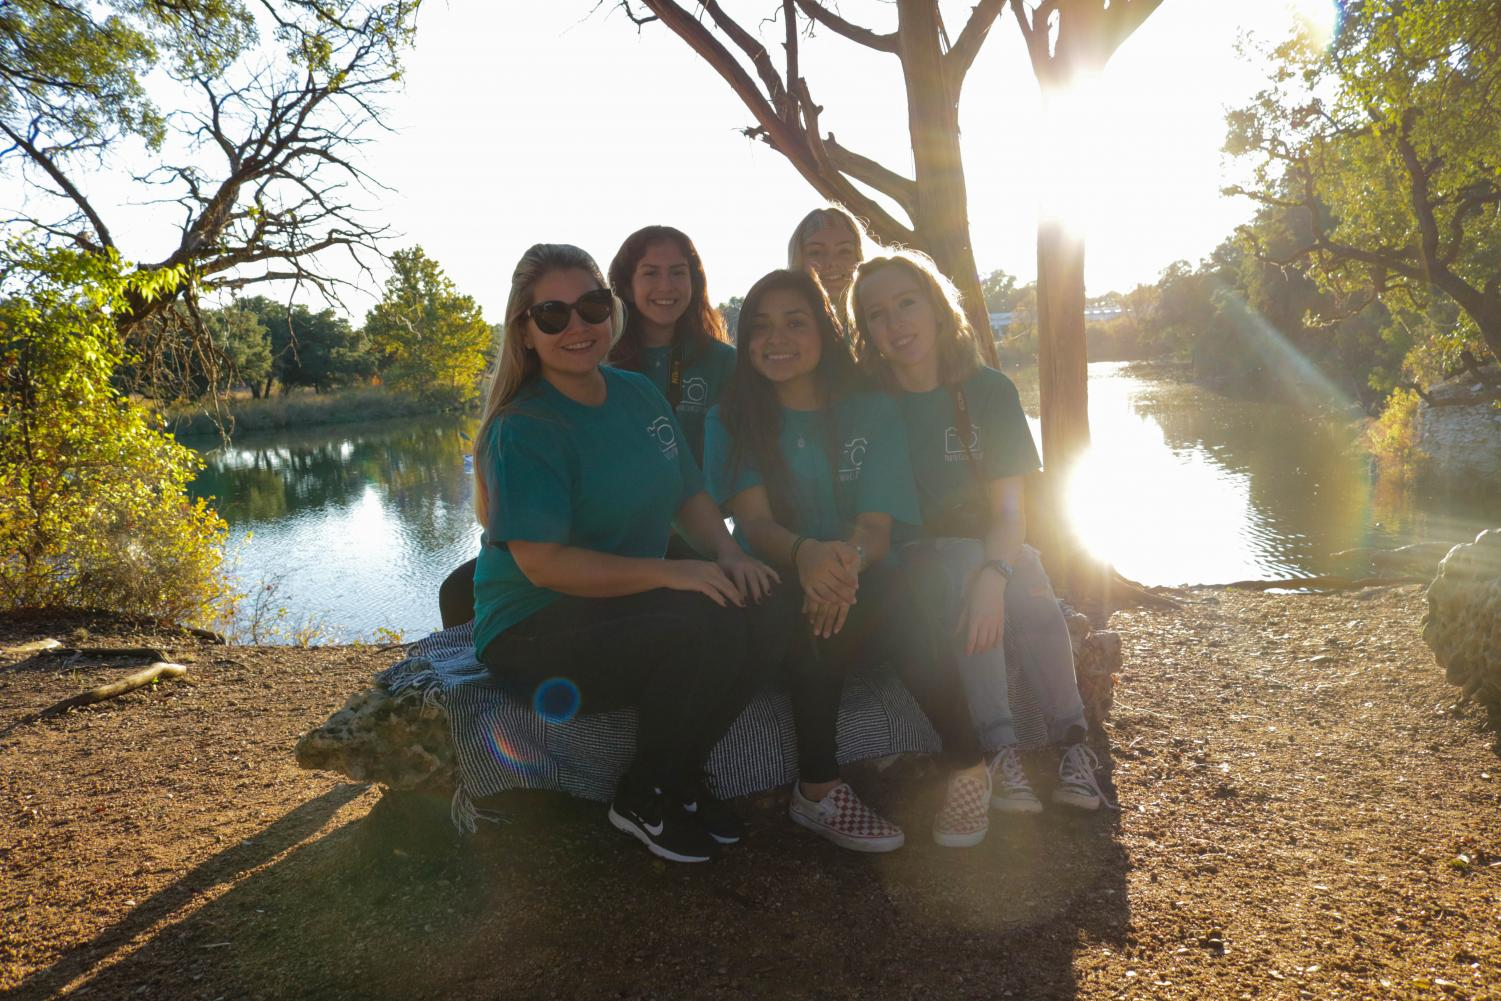 """Photography club officers and sponsor pose at Brushy Creek Park during their community service event. Senior club officer Cally Hall said she found the opportunity very enriching. """"It was rewarding to take the family photos, I enjoyed knowing that I was a part of making sure these families have memories to cherish forever,"""" Hall said. """"I was afraid I would be shy or awkward taking photos of people I don't really know, but it went a lot more smoothly than I anticipated and was actually pretty fun."""""""